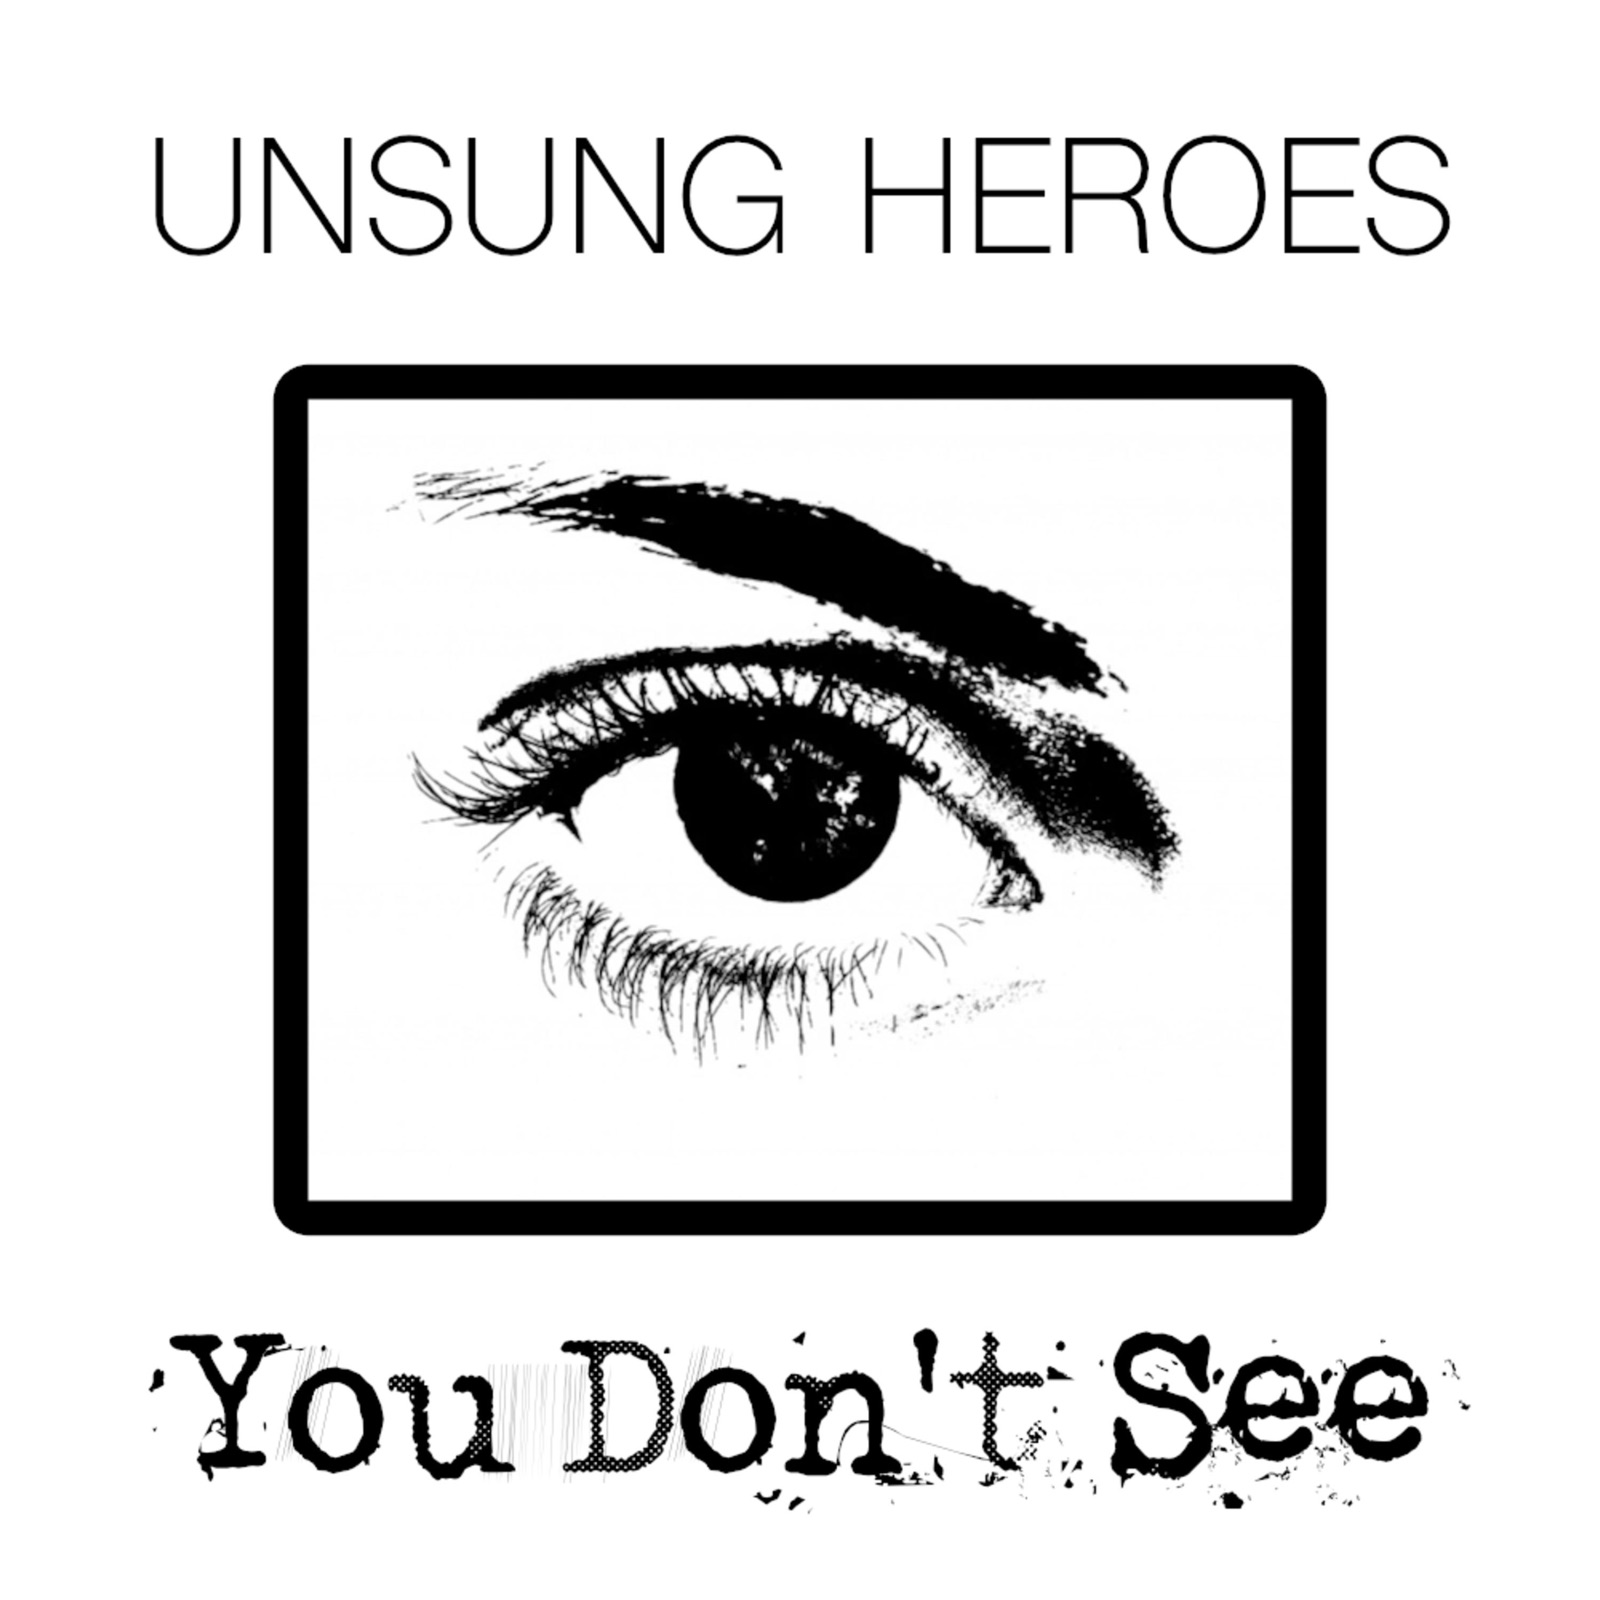 Unsung Heroes (You Don't See - Single)